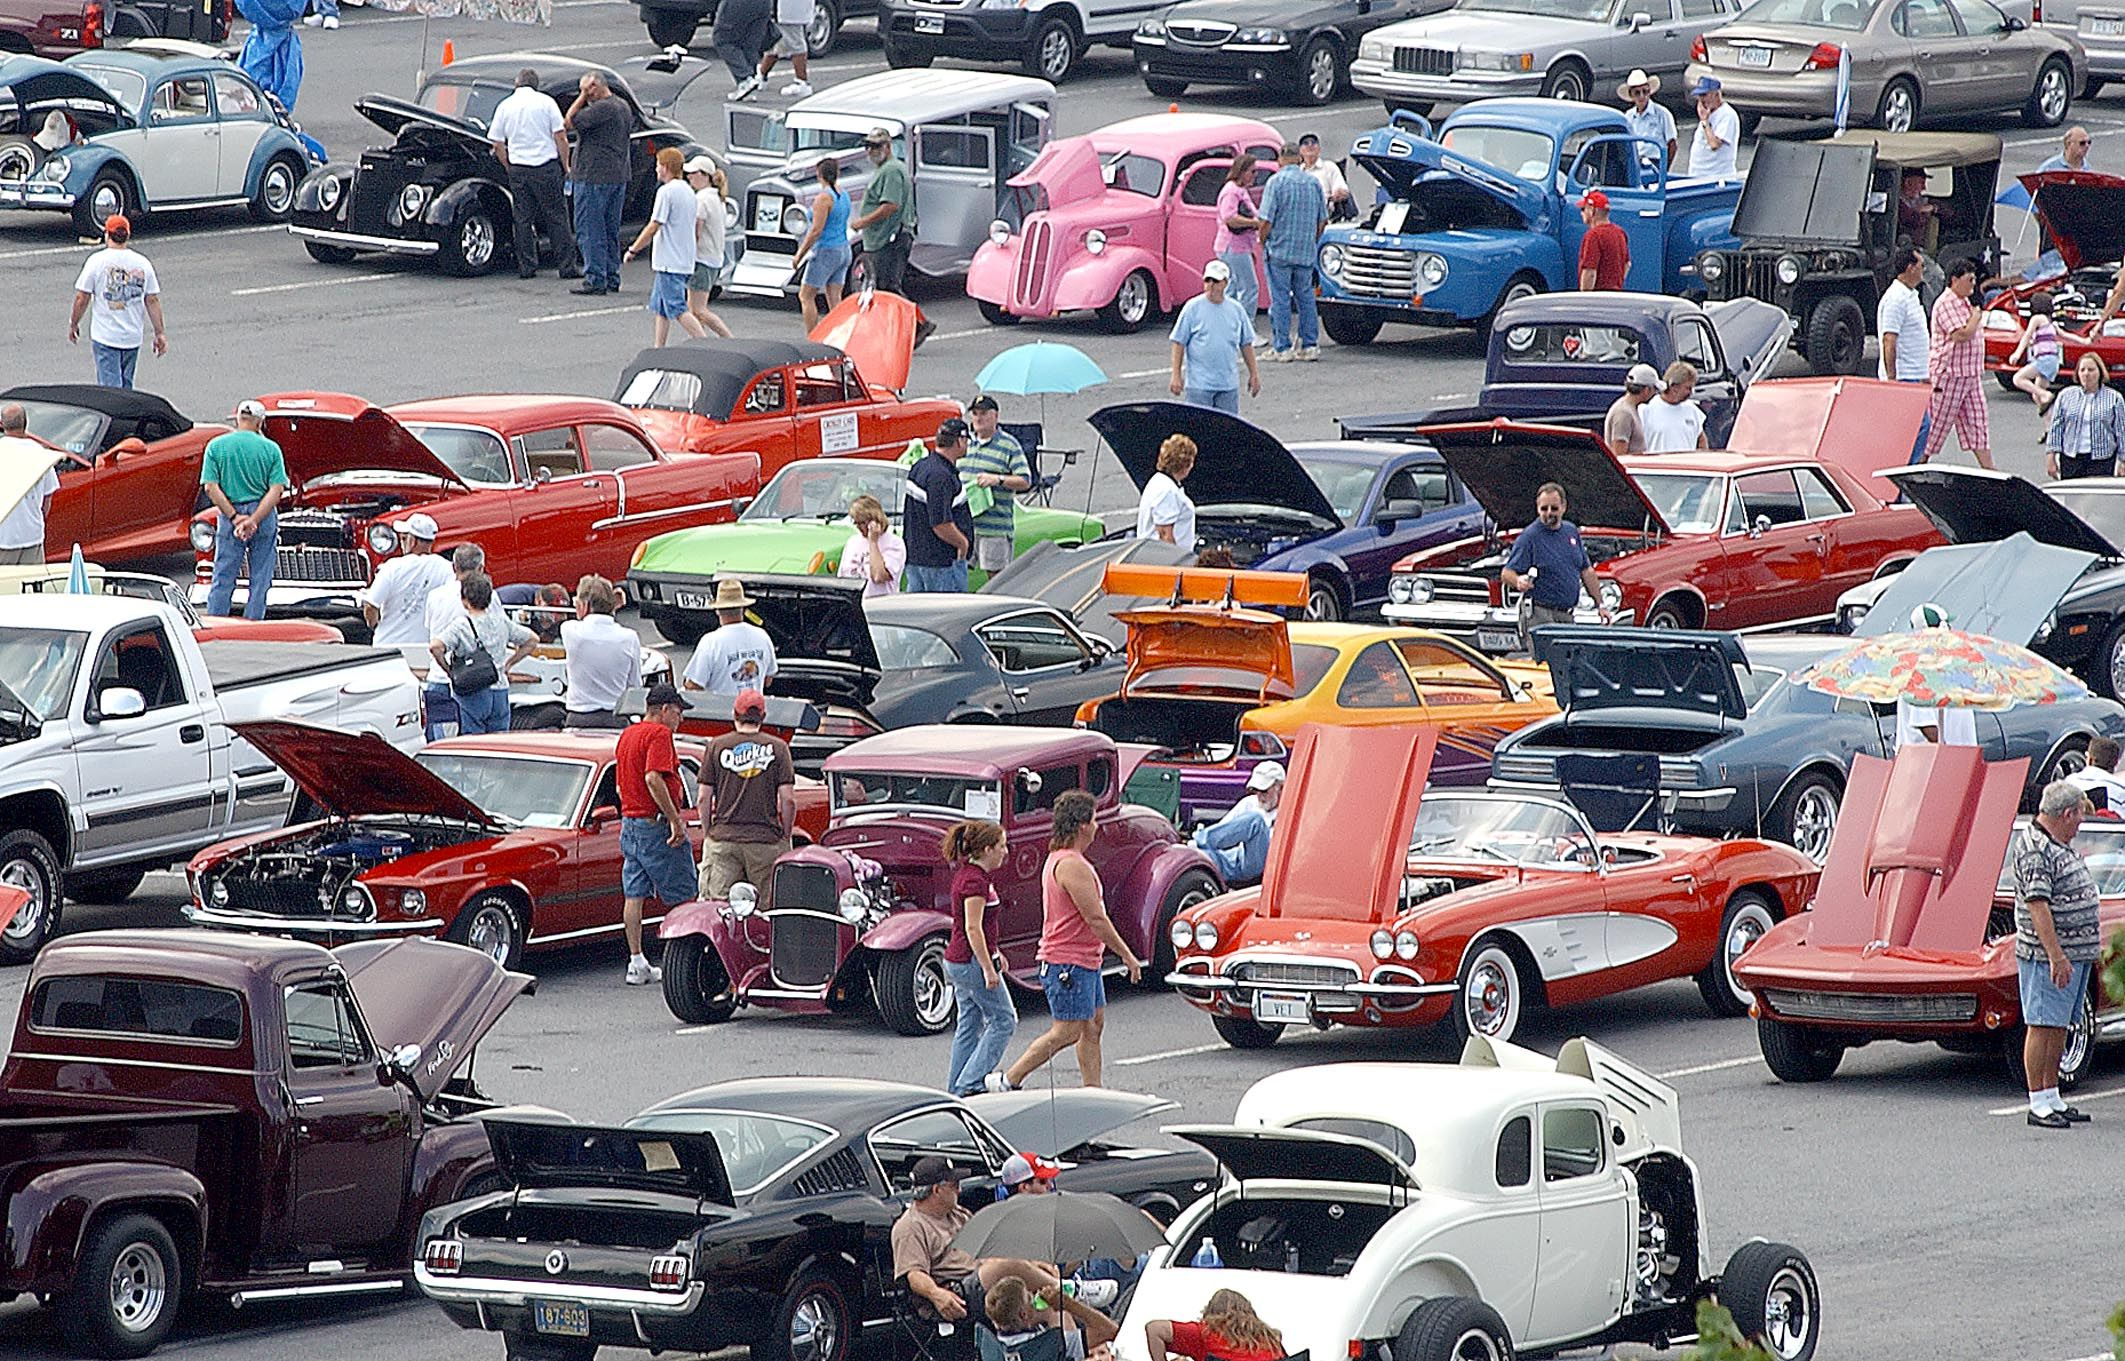 Google Image Result For Httpautorepairinbirminghamcomwpcontent - Car shows north east